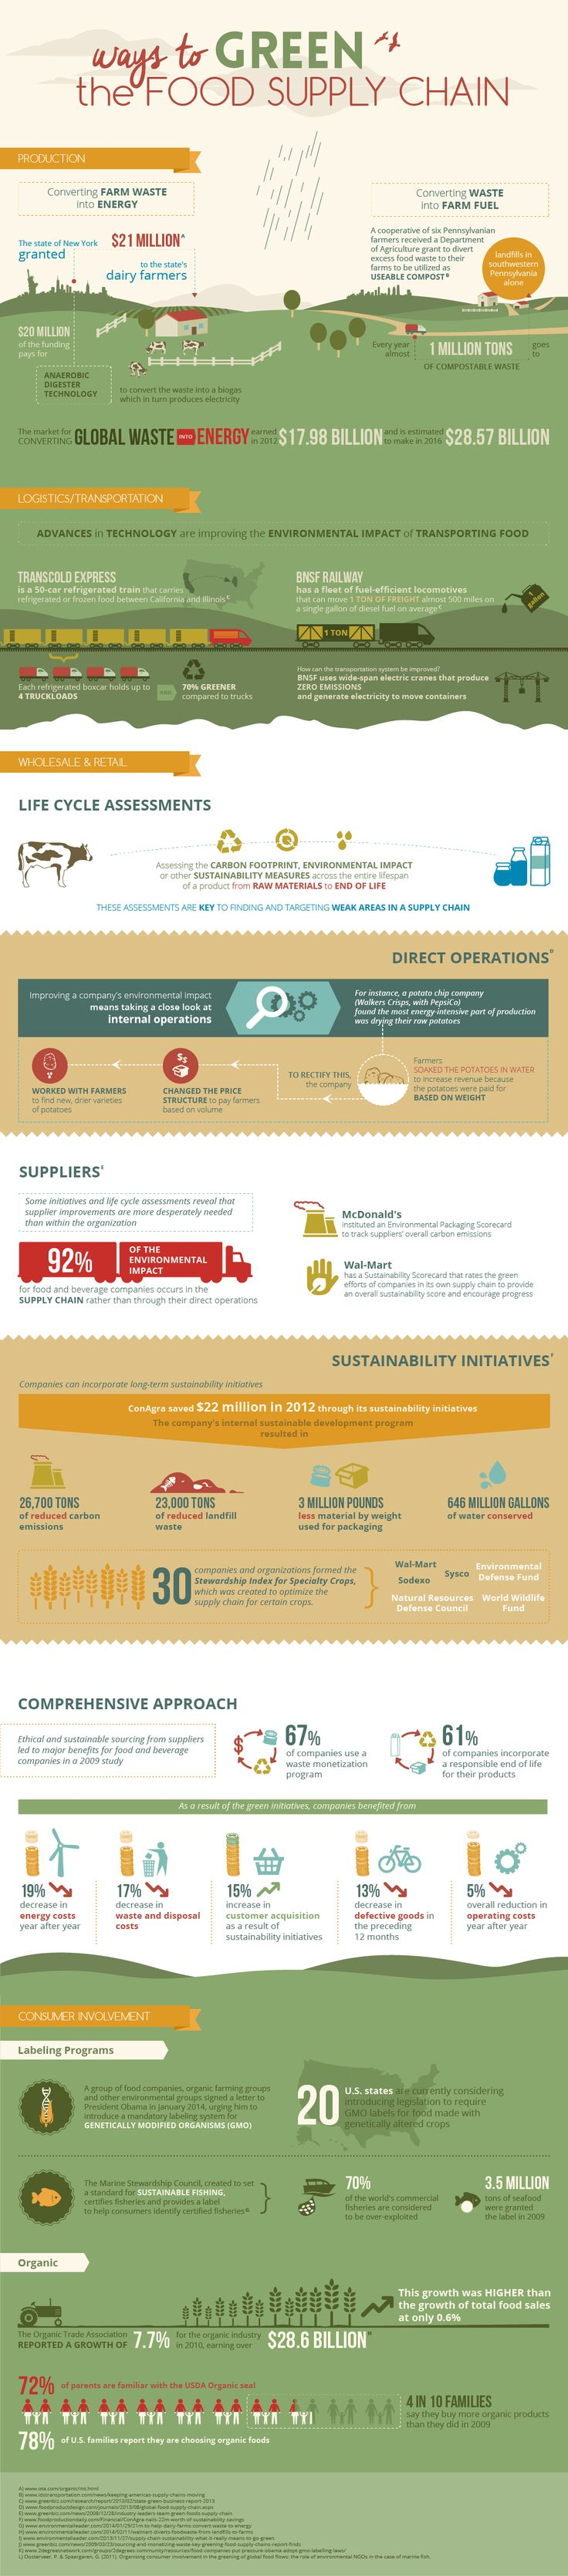 Ways to Green the Food Supply Chain [Infographic] | ecogreenlove ••• Created and brought to you by Marylhurst University's Online MBA in Sustainable Business program